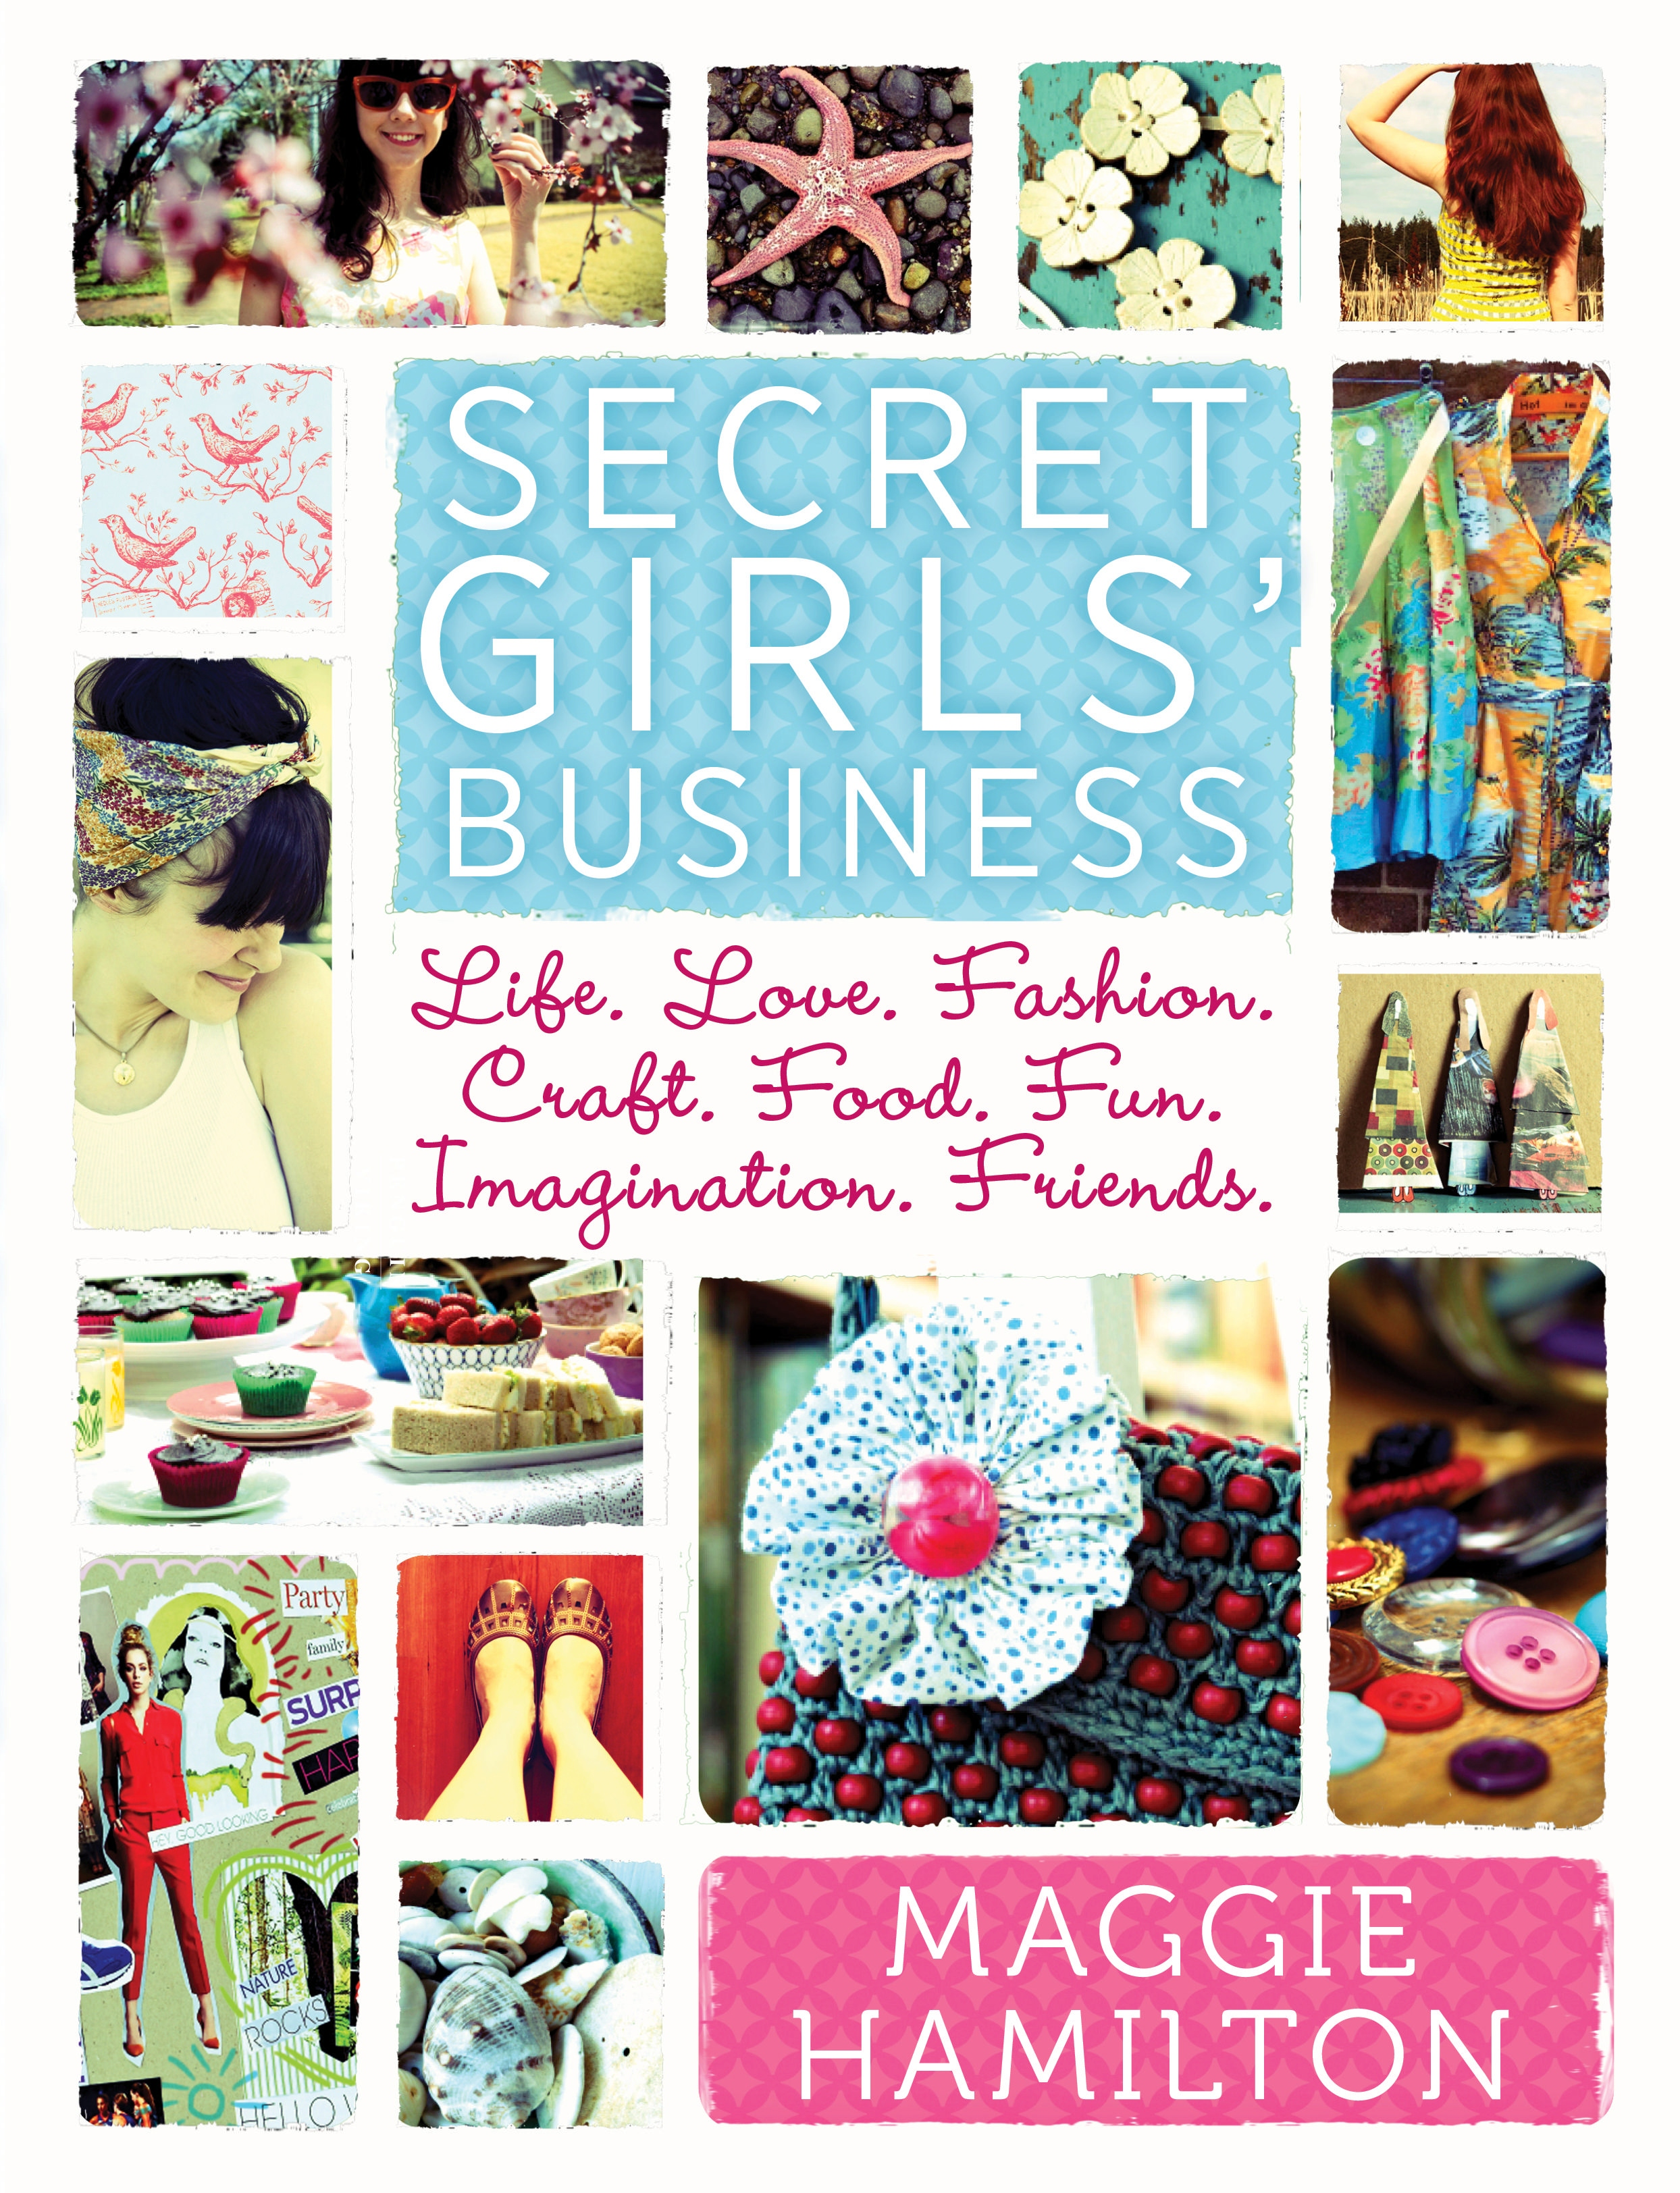 Secret Girls' Business by Maggie Hamilton, ISBN: 9780670076772